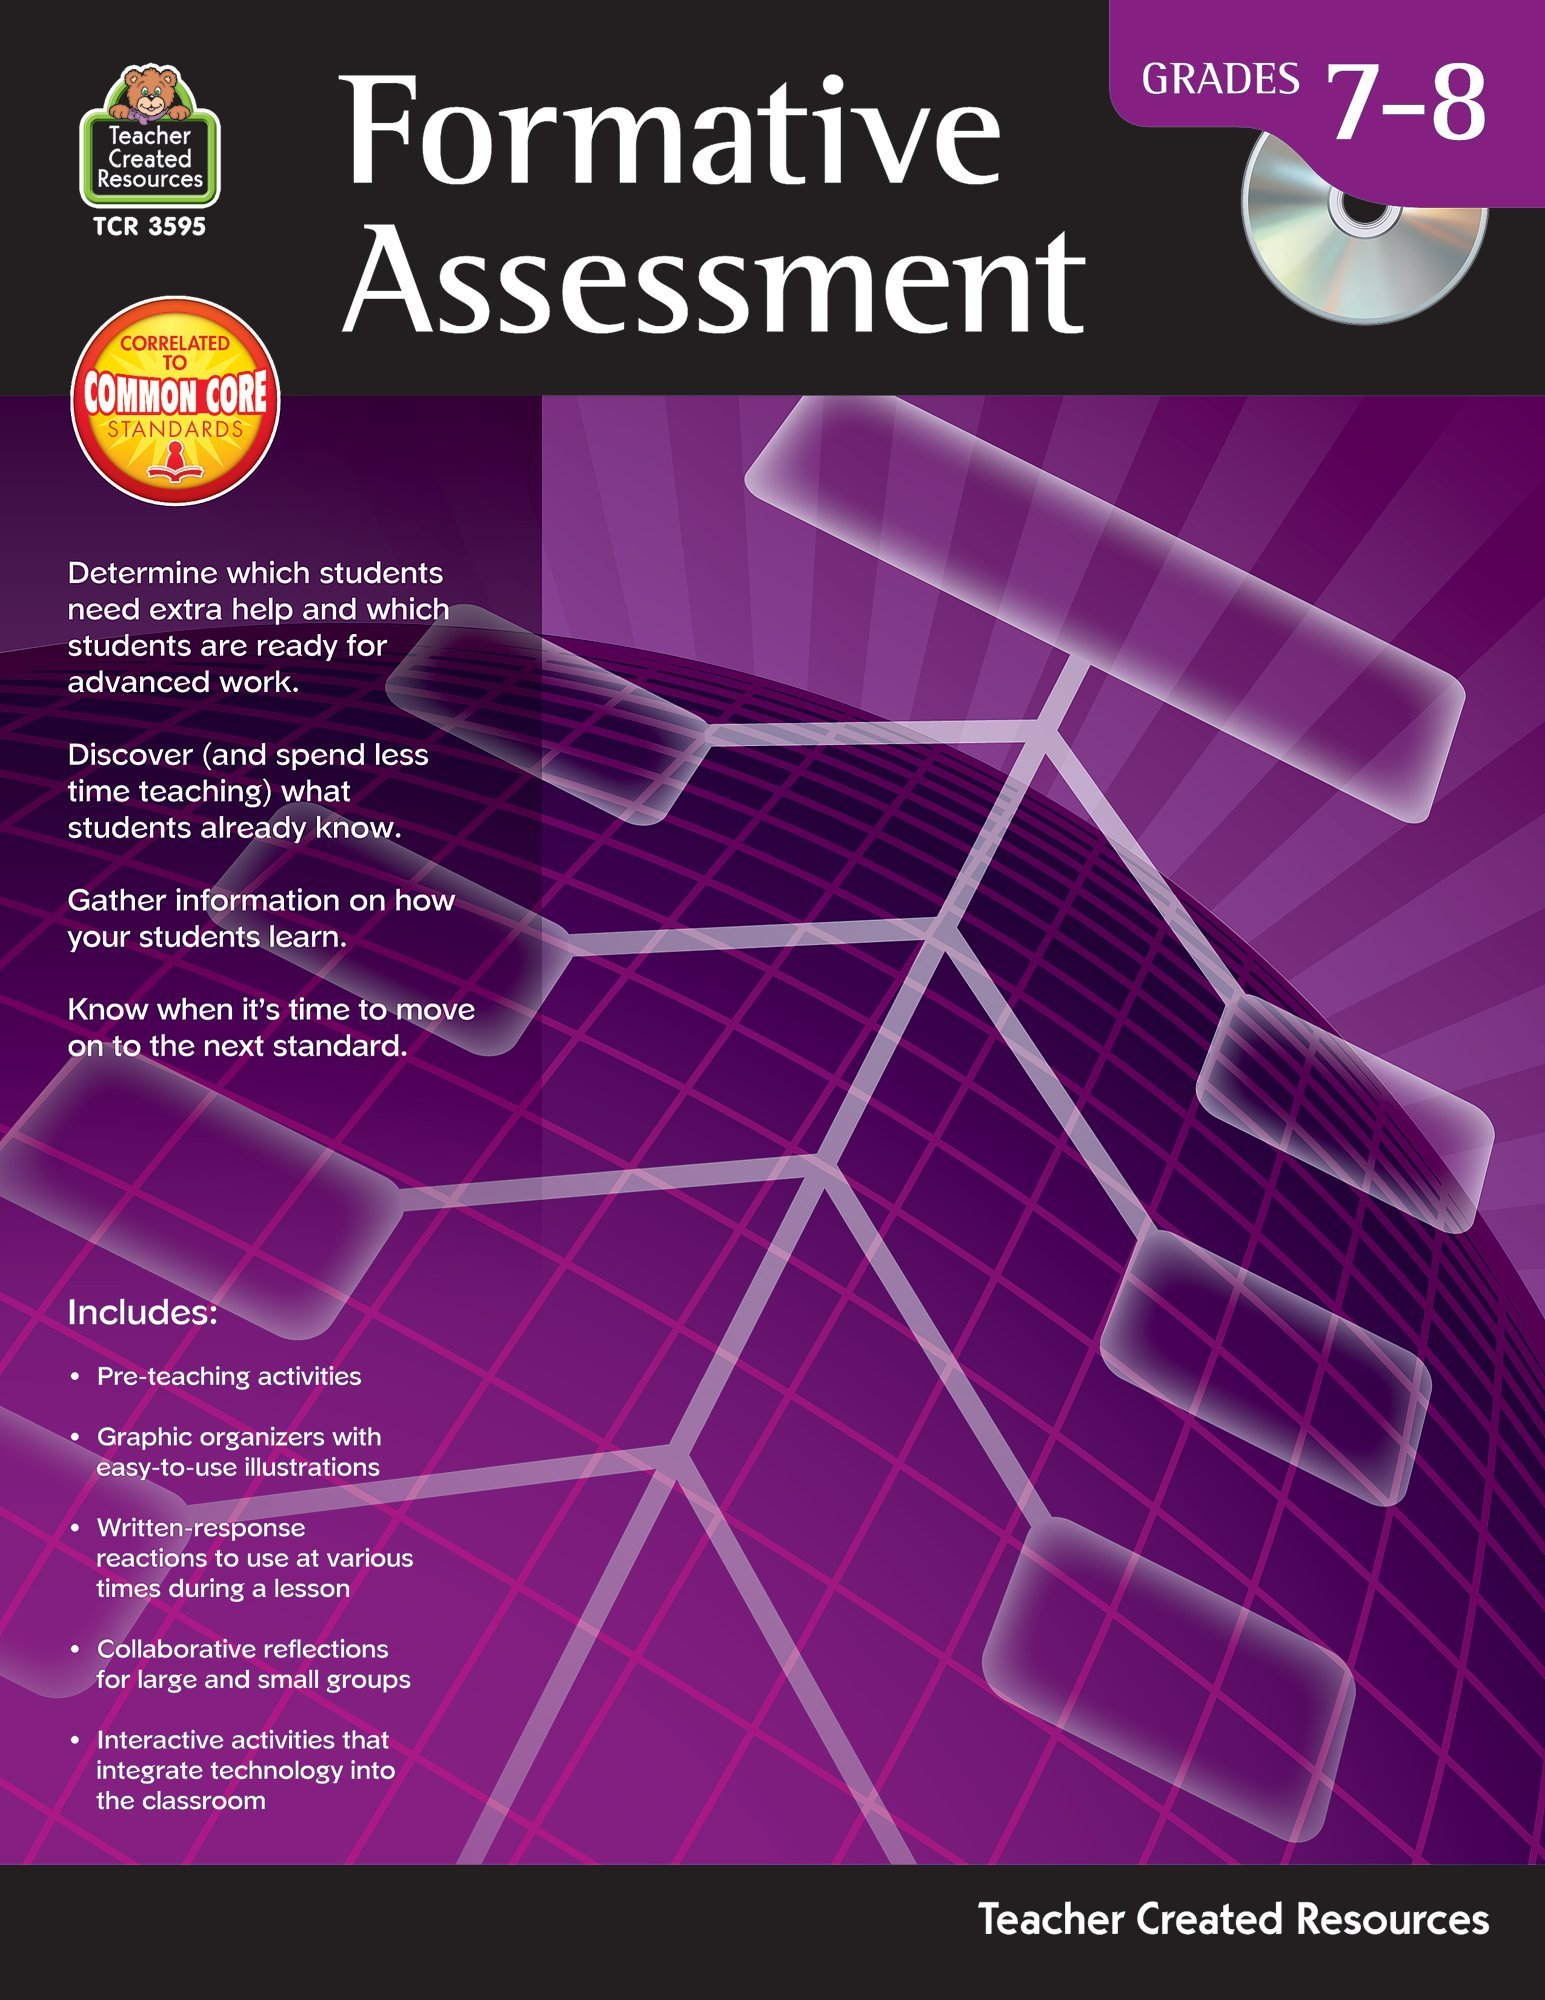 Formative Assessment Grade 7-8 Paperback – Jan 8 2014 Susan Mackey Collins Teacher Created Resources 1420635956 Education